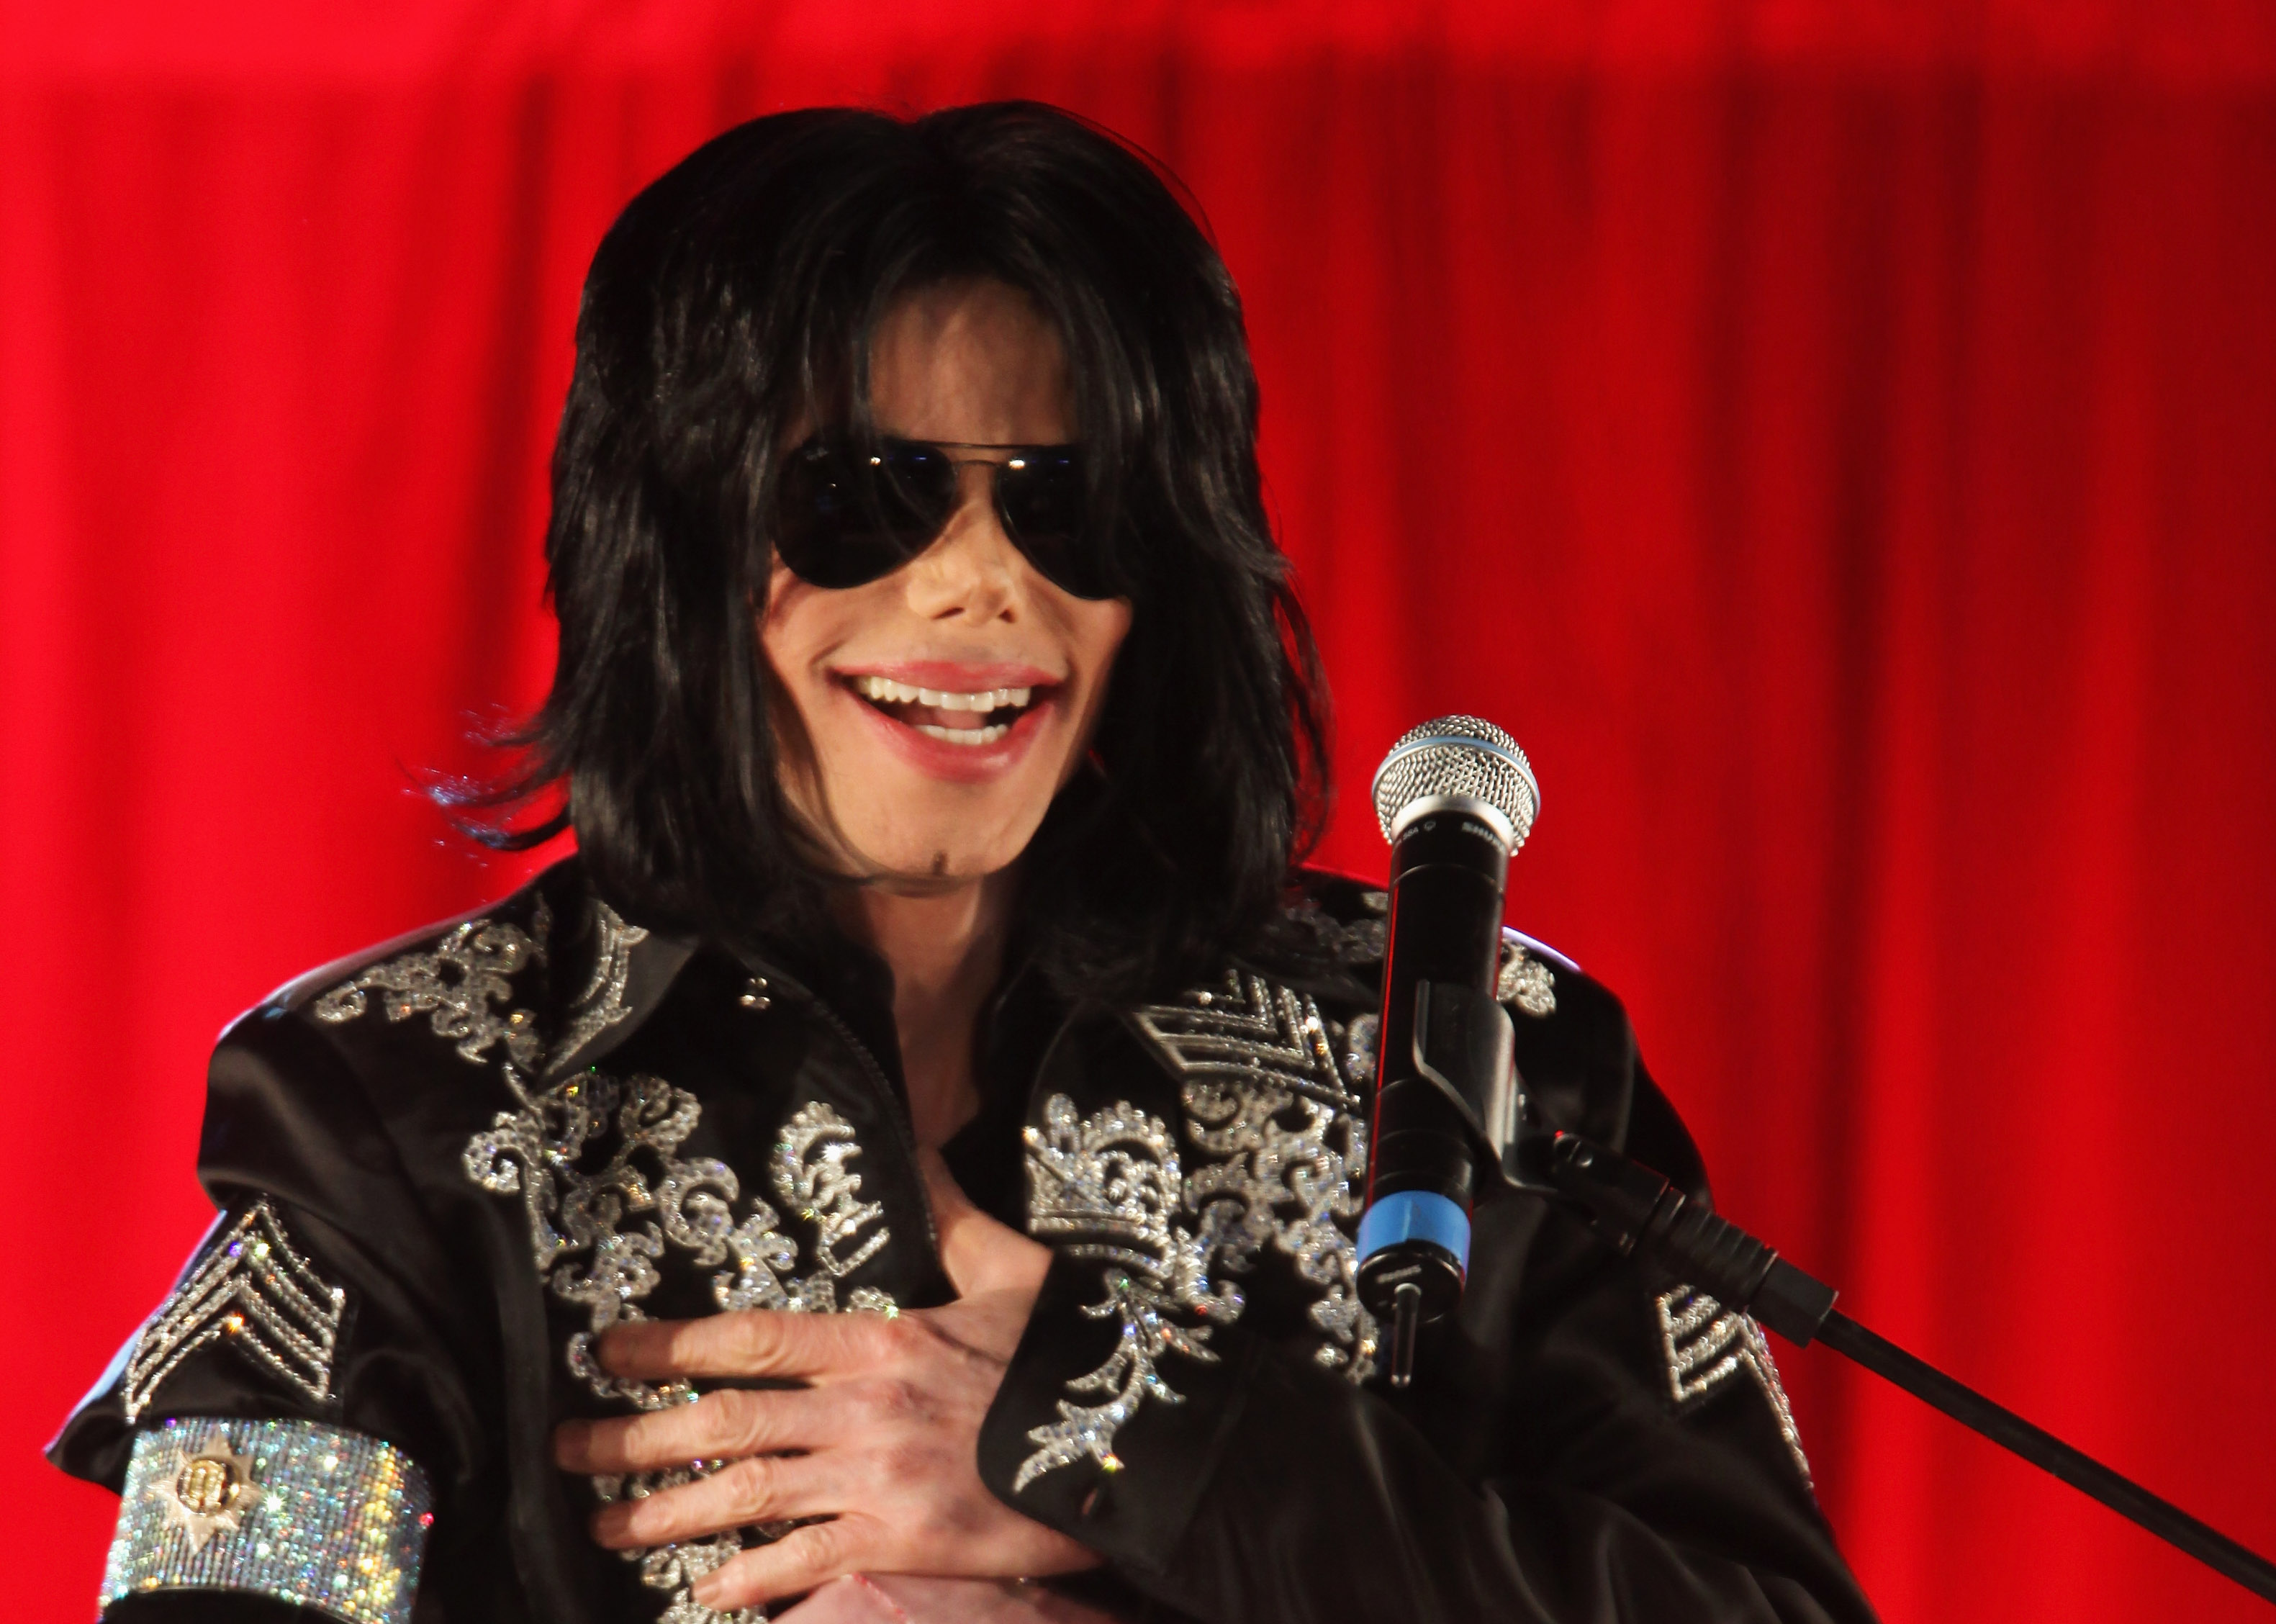 Jackson settled the civil lawsuit filed by Jordan Chandler for $23 million (Source: Tim Whitby/Getty Images)